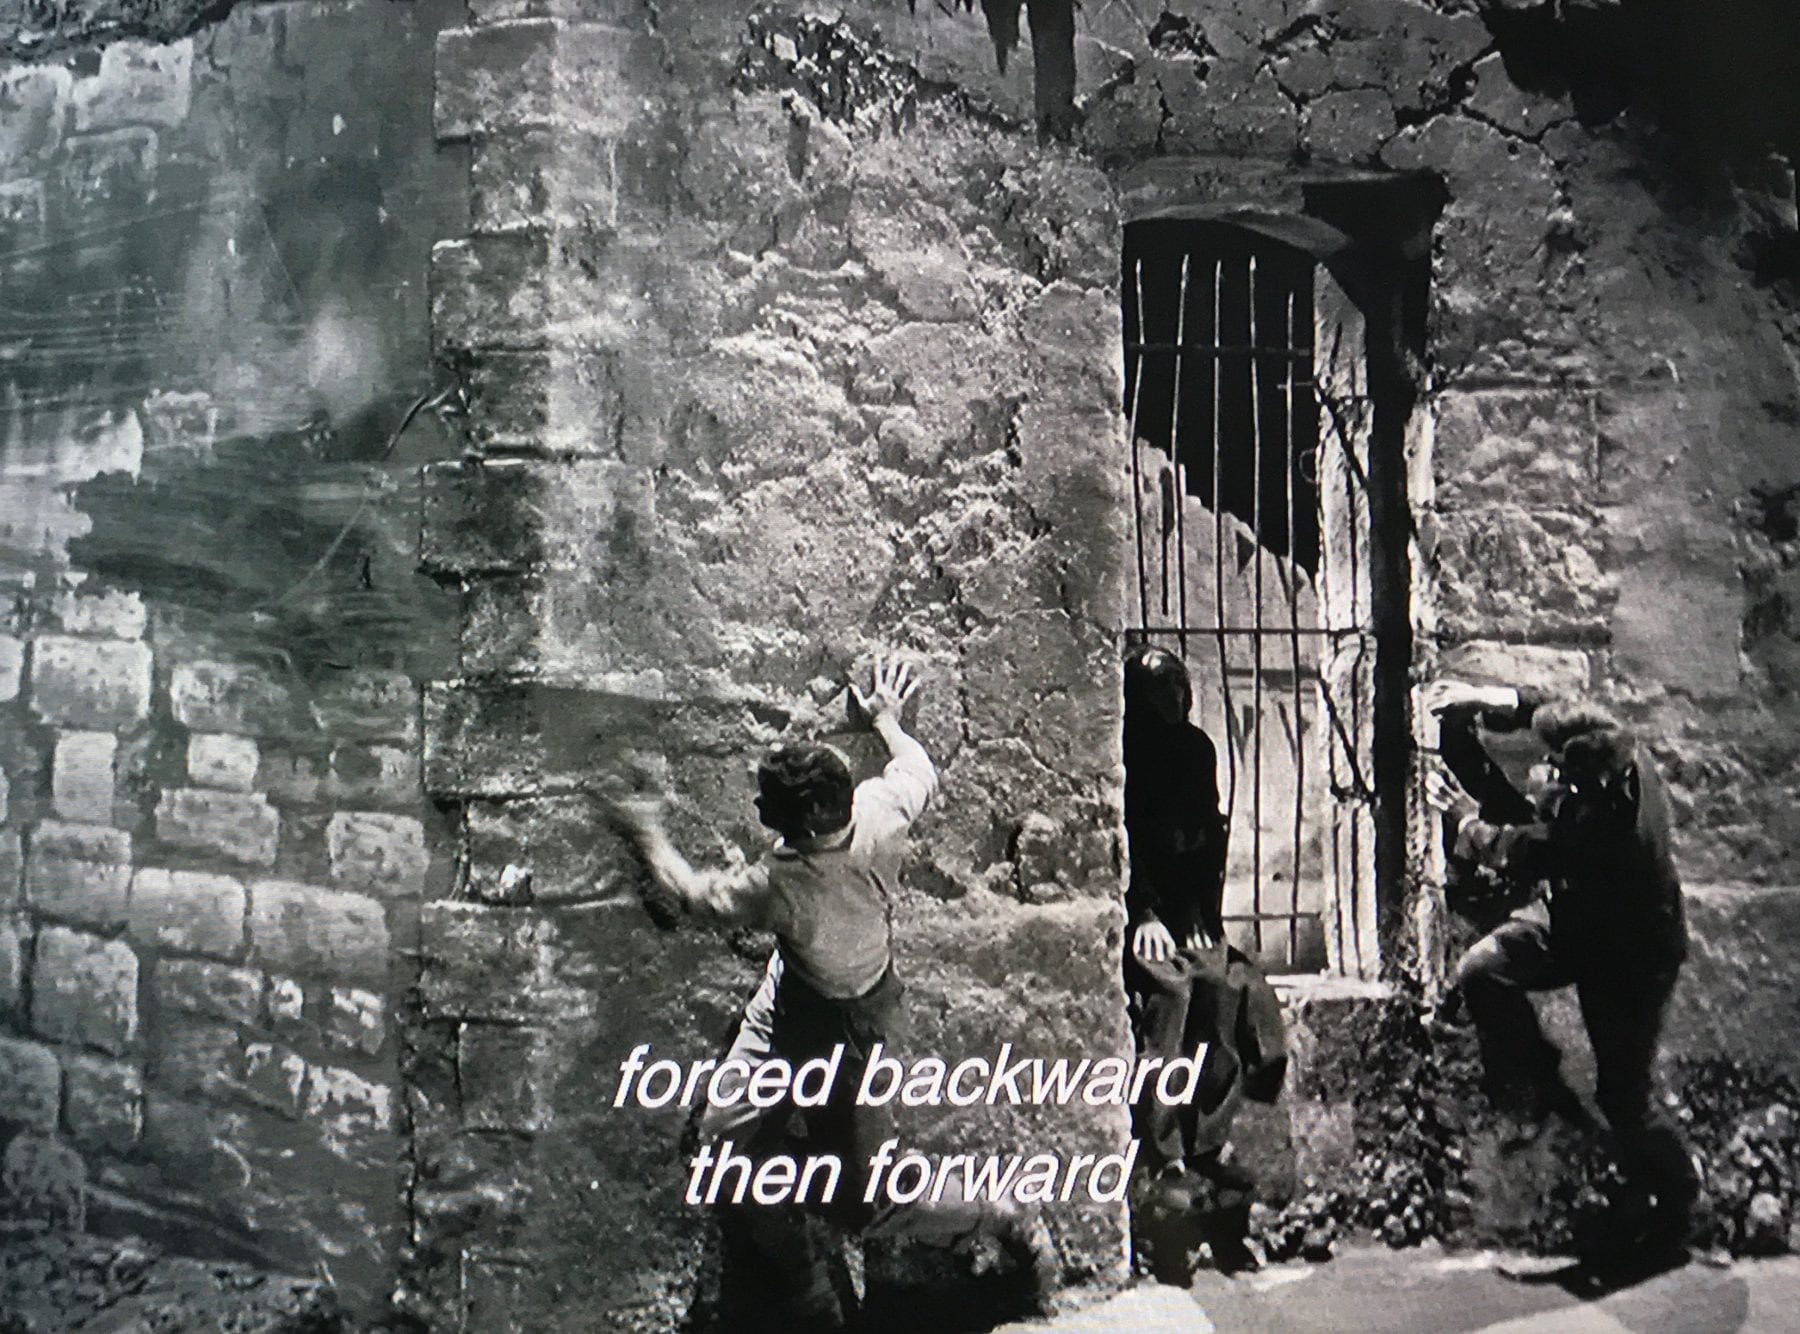 Cocteau references his first film, The Blood of a Poet